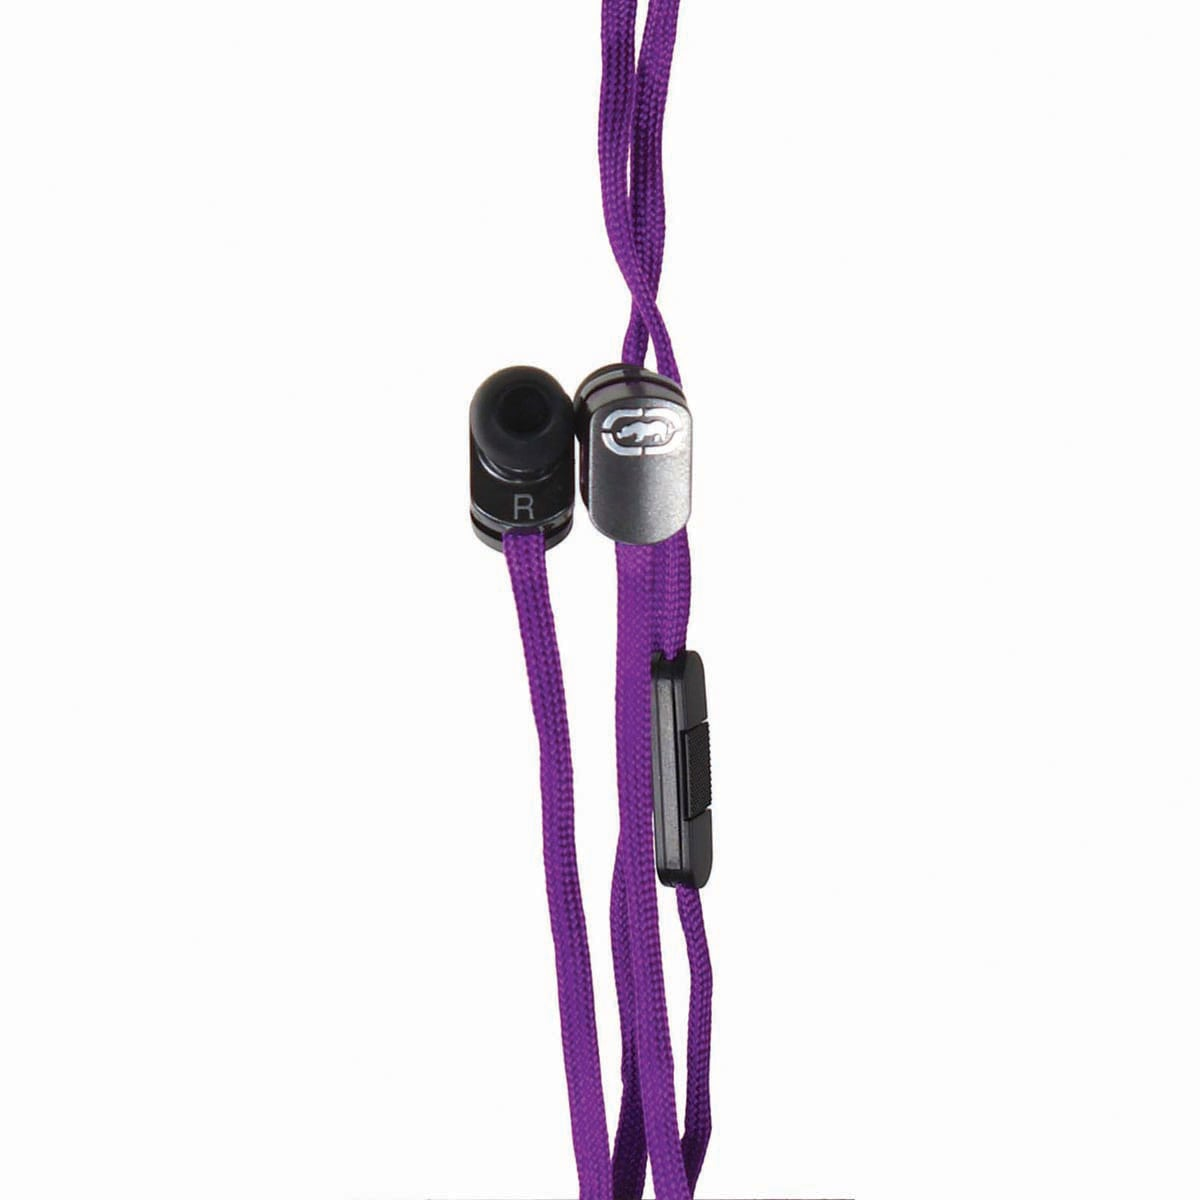 Ecko Lace Purple Earbud and mic EKU-LCE-PRP